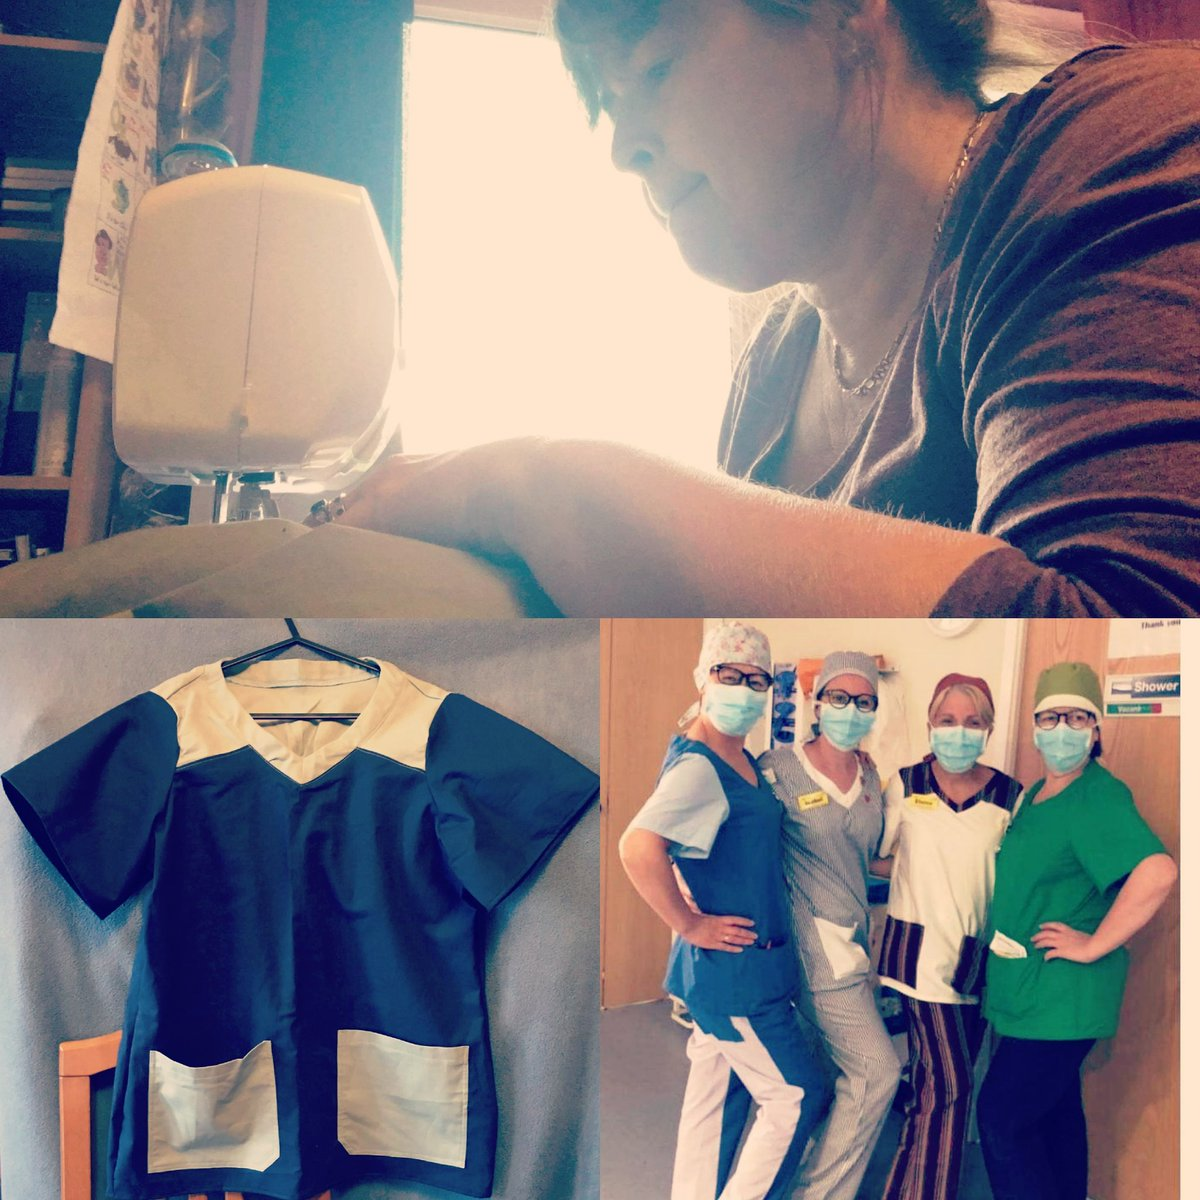 Our amazing @AlisonClark20 has been using her time to create scrubs for the amazing people at the NHS via scrubs glorious scrubs! #weareproudofyou #helpingothers #heroes #scrubs #scrubsgloriousscrubs #iceskater #adultskater #iceage #sewing #helpingheroes #TogetherAtHomepic.twitter.com/K6P2xa91FE